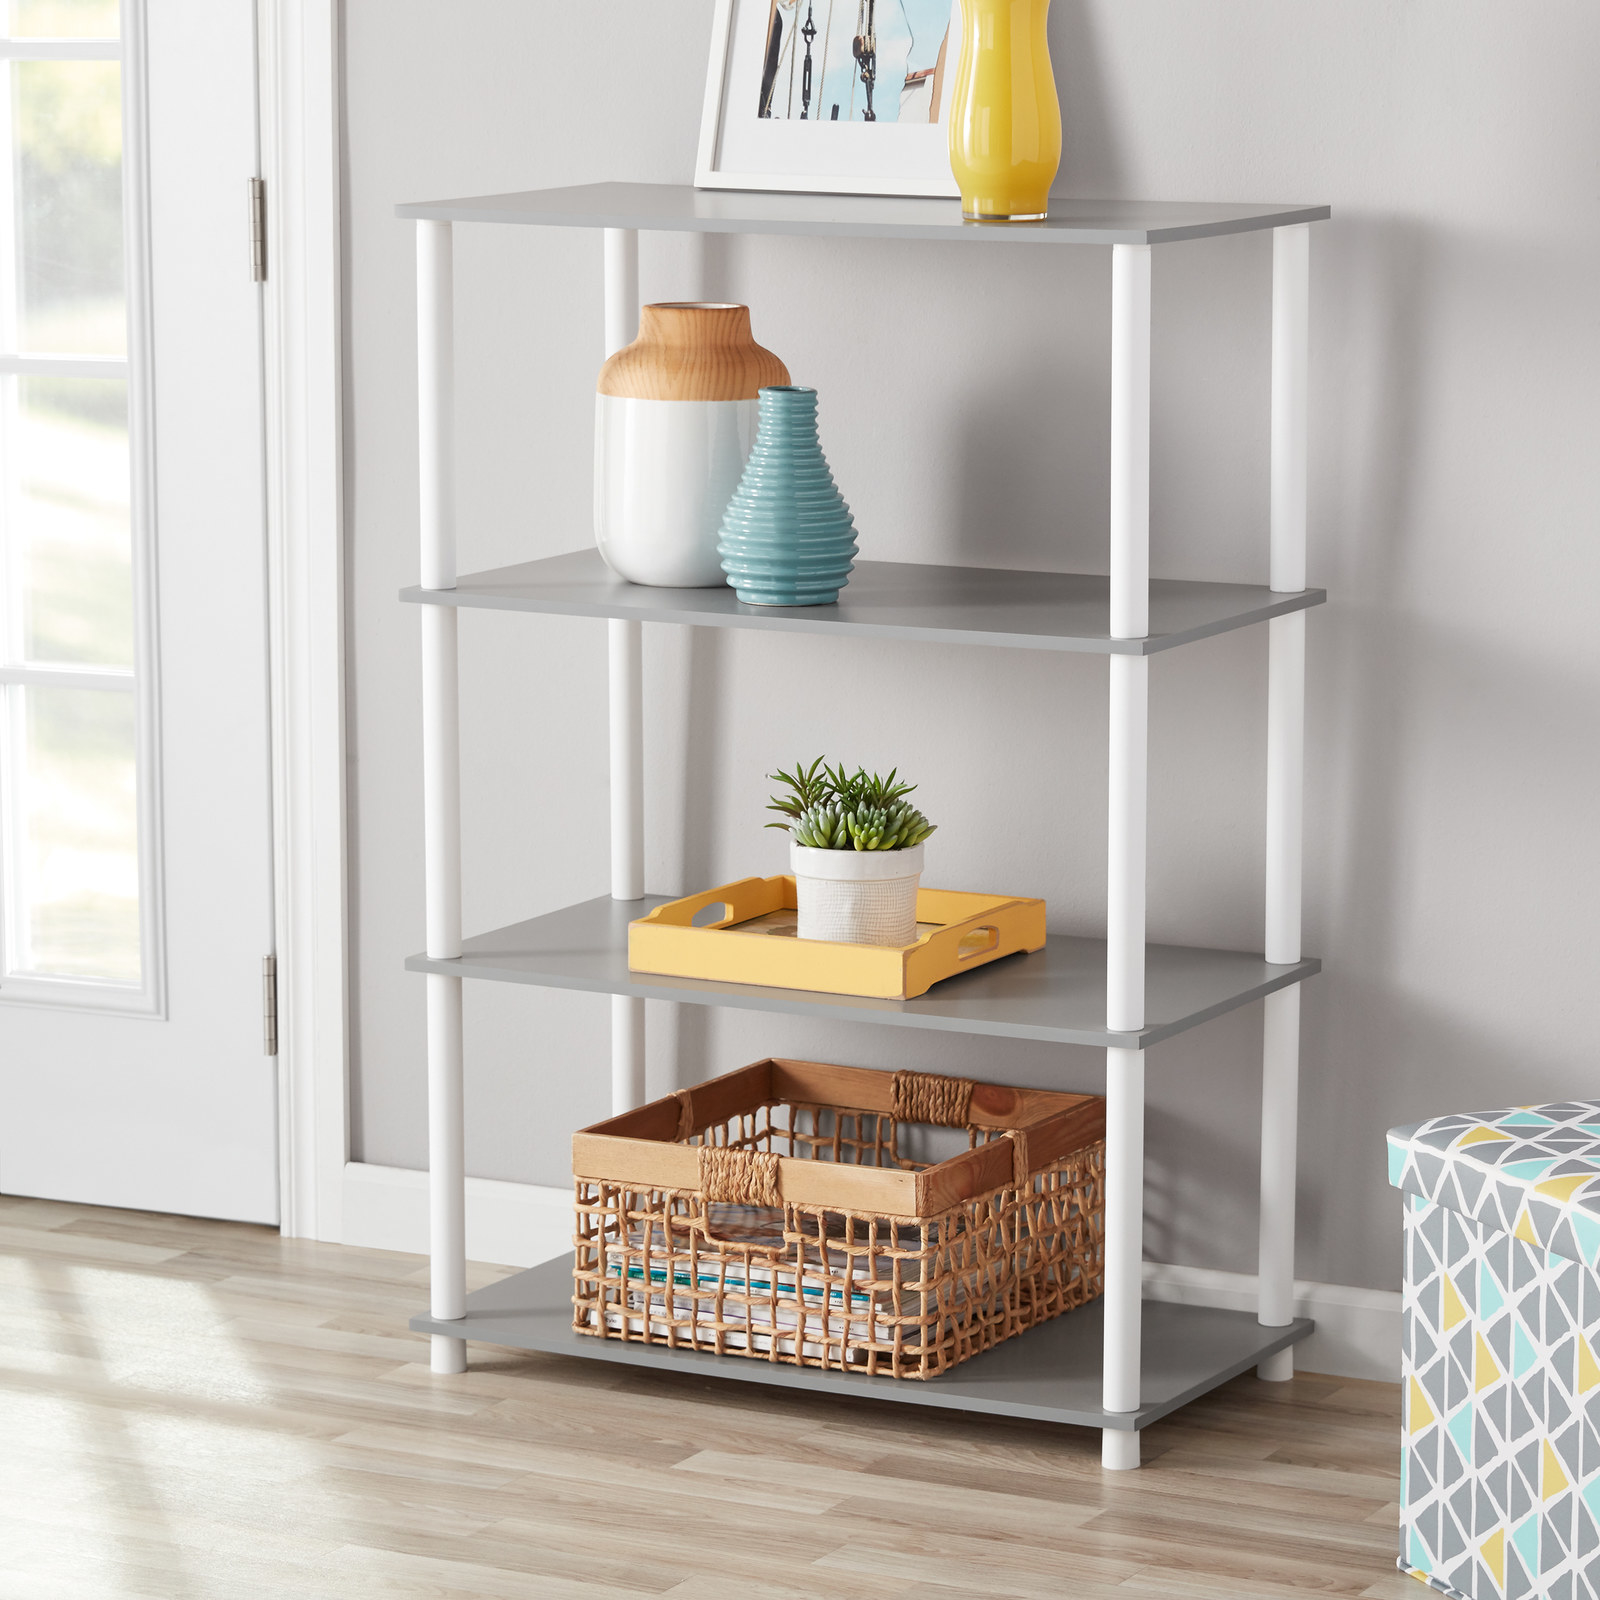 """Promising review: """"I love these shelves! I bought a set for my young son's room about two years ago to keep all his sporting equipment on. It is still holding up perfectly, so when I remodeled both my kids' bedrooms last month, I bought two more. I keep one in my son's closet to keep his stuff organized. They are perfect for a single mom because they are SUPER easy to put together. NO TOOLS! All the parts just screw into each other and for being plastic, they hold up well. My daughter put hers together herself. And you CANNOT BEAT THE PRICE! Love these!! I even bought the matching side tables."""" —MonicaMPrice: $19.88+ (available in five colors)"""